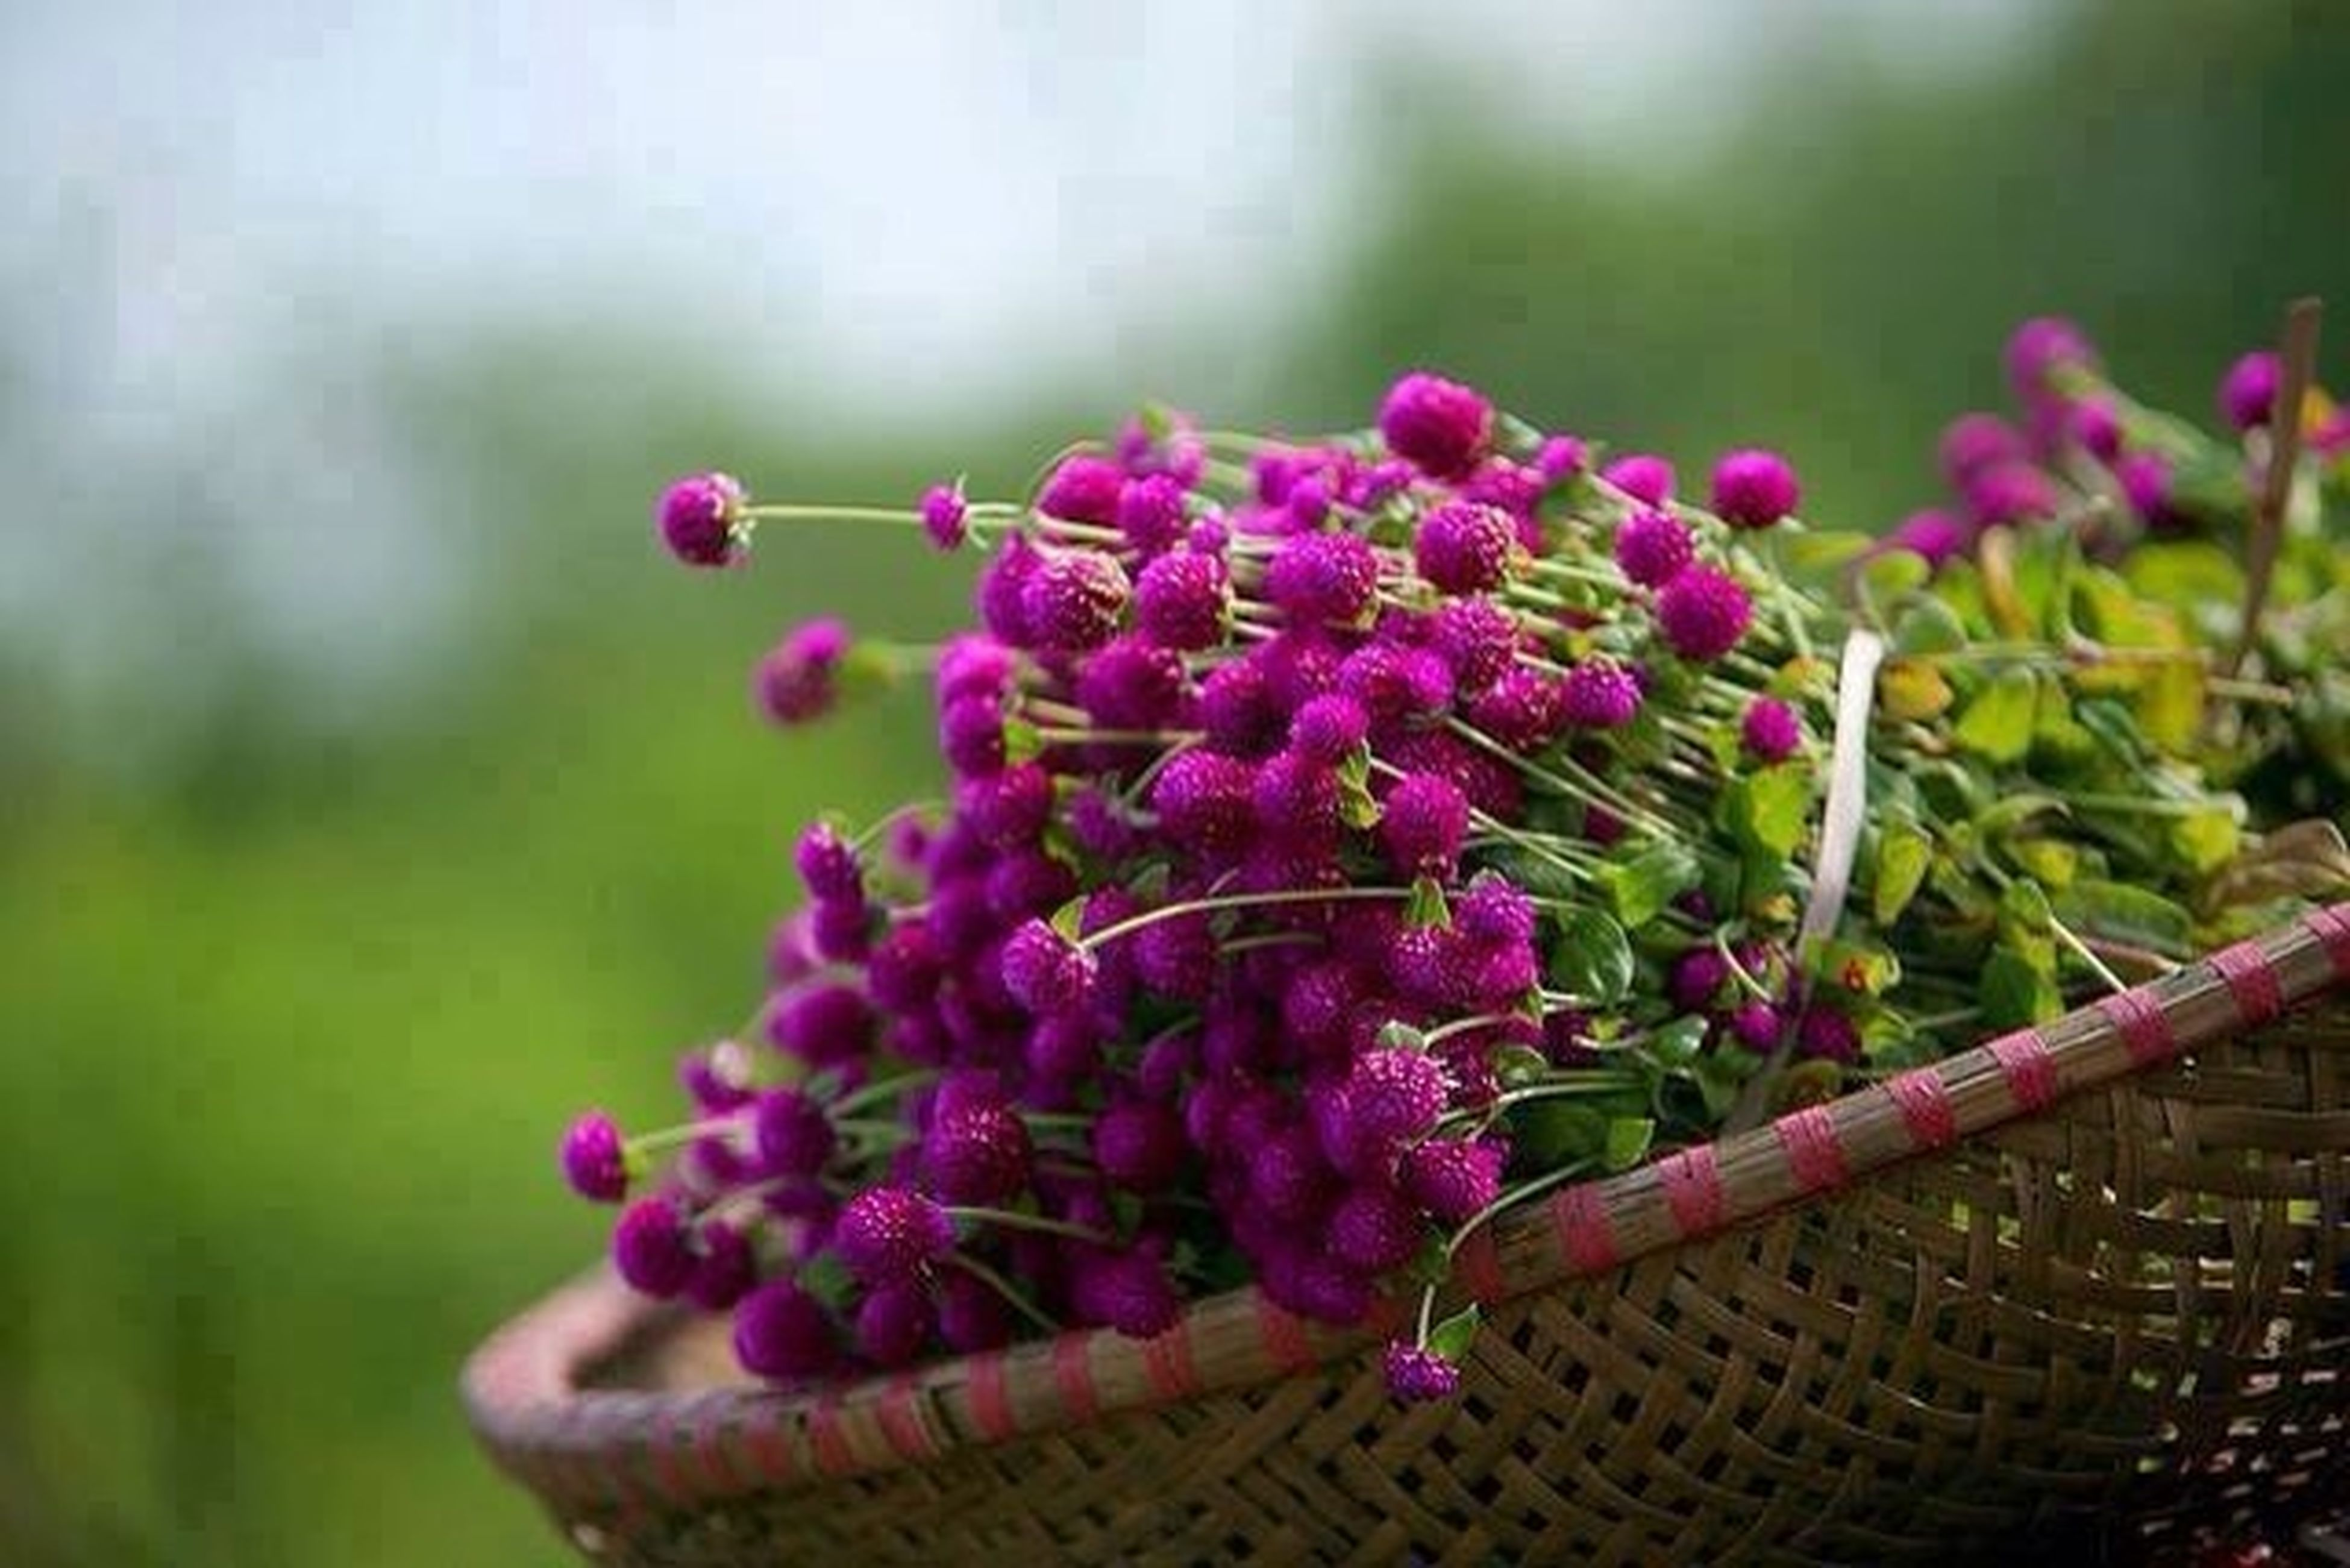 flower, freshness, focus on foreground, fragility, growth, purple, petal, pink color, plant, close-up, beauty in nature, blooming, nature, flower head, stem, selective focus, day, in bloom, outdoors, bud